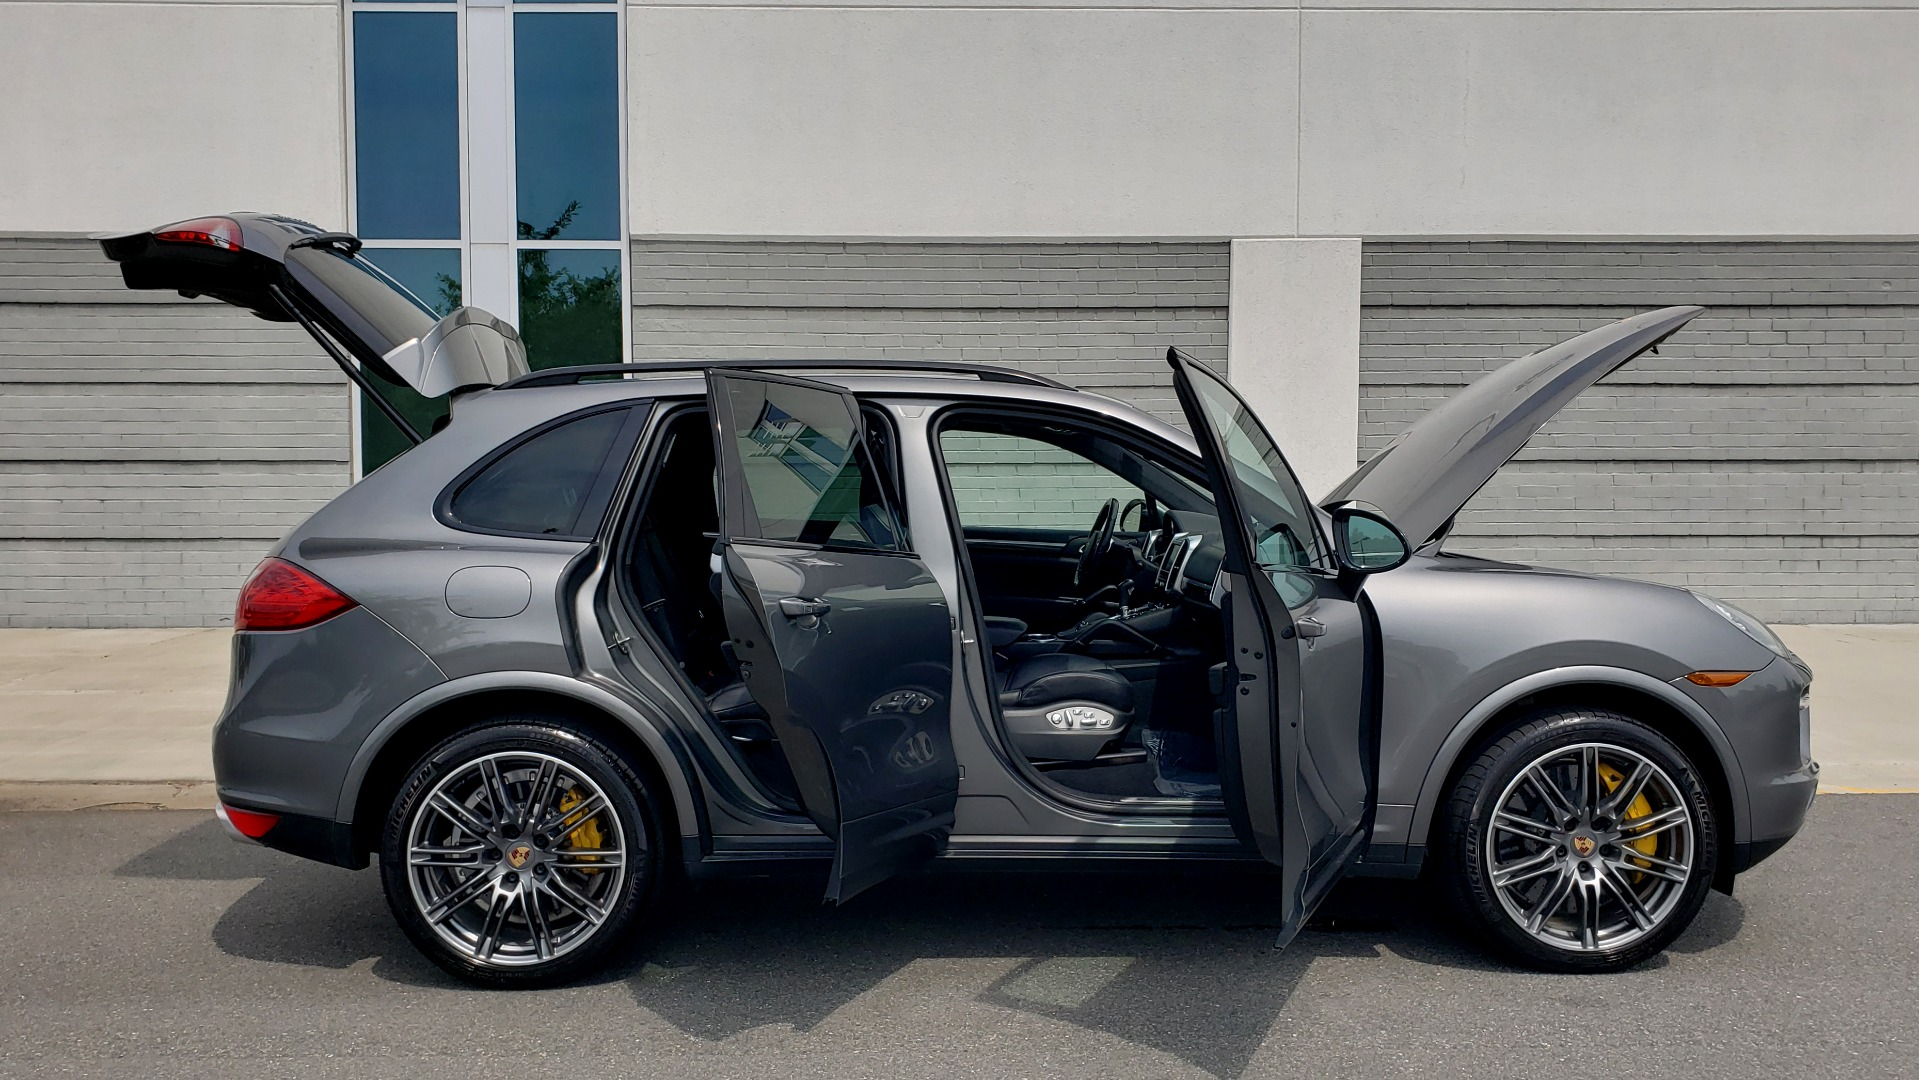 Used 2014 Porsche CAYENNE TURBO S / AWD / NAV / BOSE / PANO-ROOF / LCA / REARVIEW for sale Sold at Formula Imports in Charlotte NC 28227 13